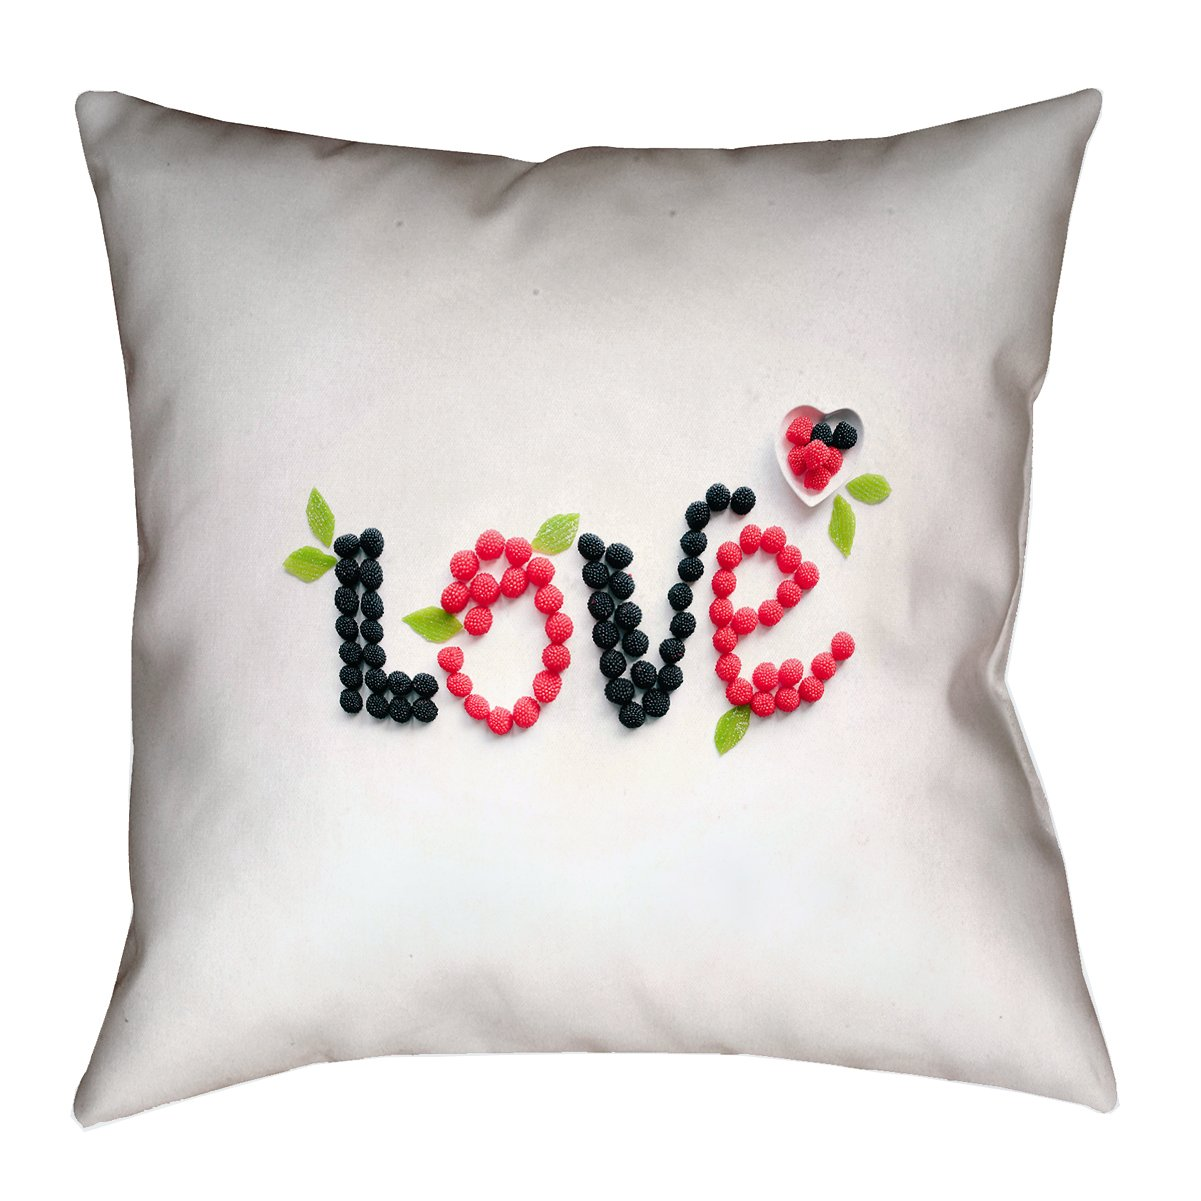 ArtVerse Brooke Lark 40' x 40' Floor Double Sided Print with Concealed Zipper & Insert Love and Berries Pillow SMI054F4040L